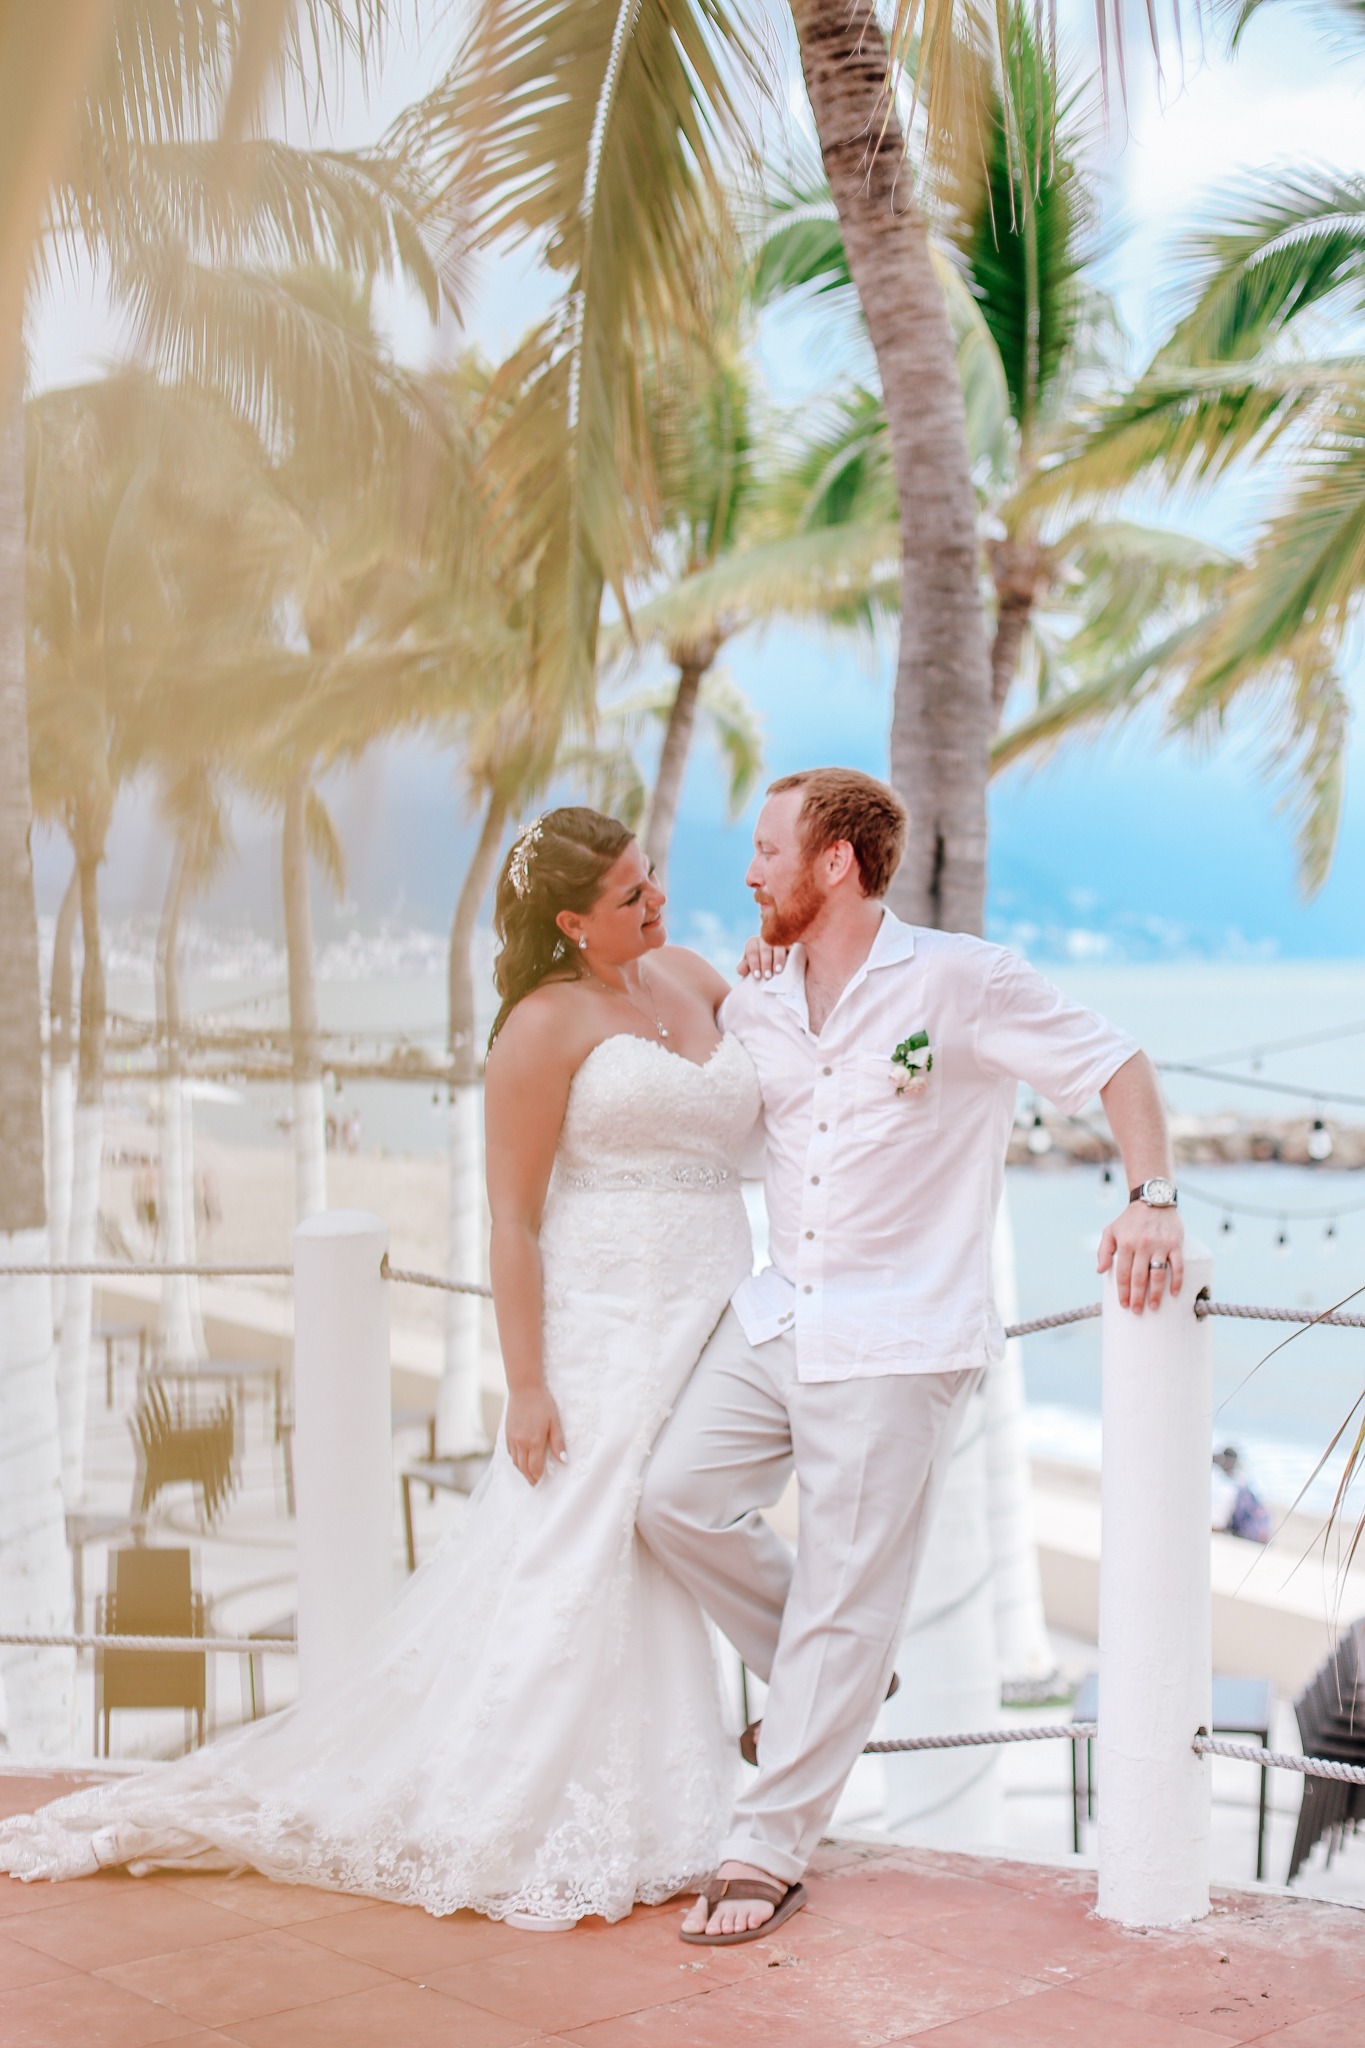 Tiffany and Ryan - Puerto Vallarta Wedding Photographer - 98.jpg